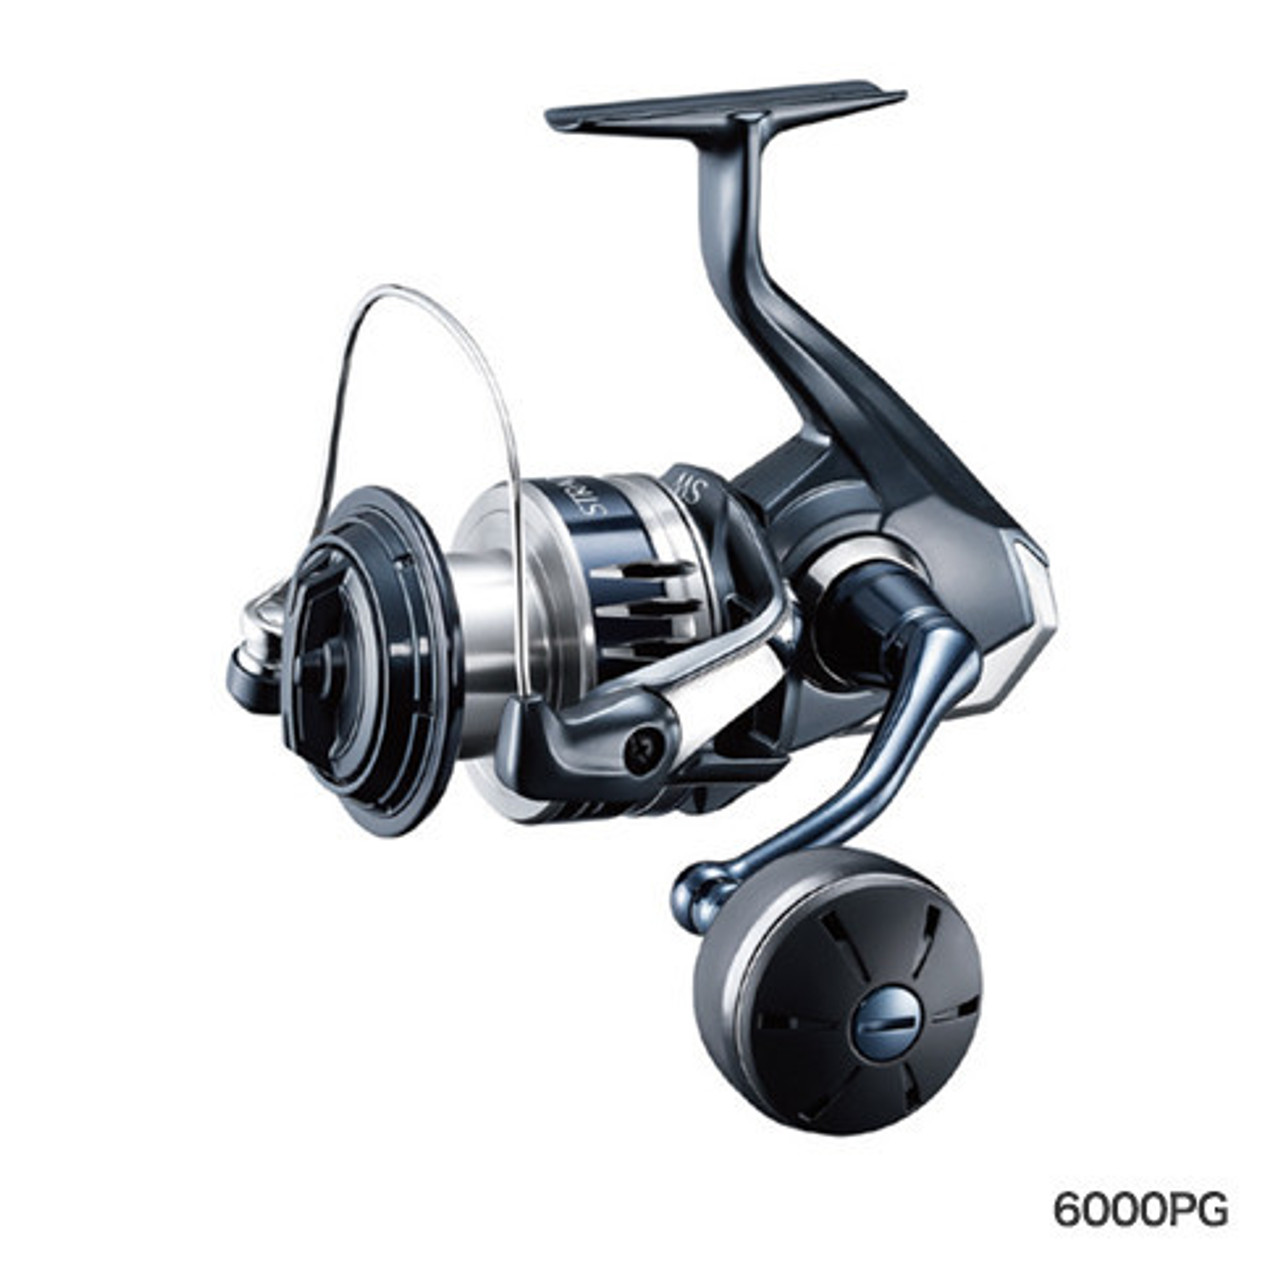 Slow invitation and hoisting power-oriented model  # 5000 Large diameter spool model. With the excellent power of PG, it is ideal for slow invitations in gori-rolling fights, jigging and casting games.  [Reference target fish / fishing species] Jigging, shore jigging & plugging, etc.